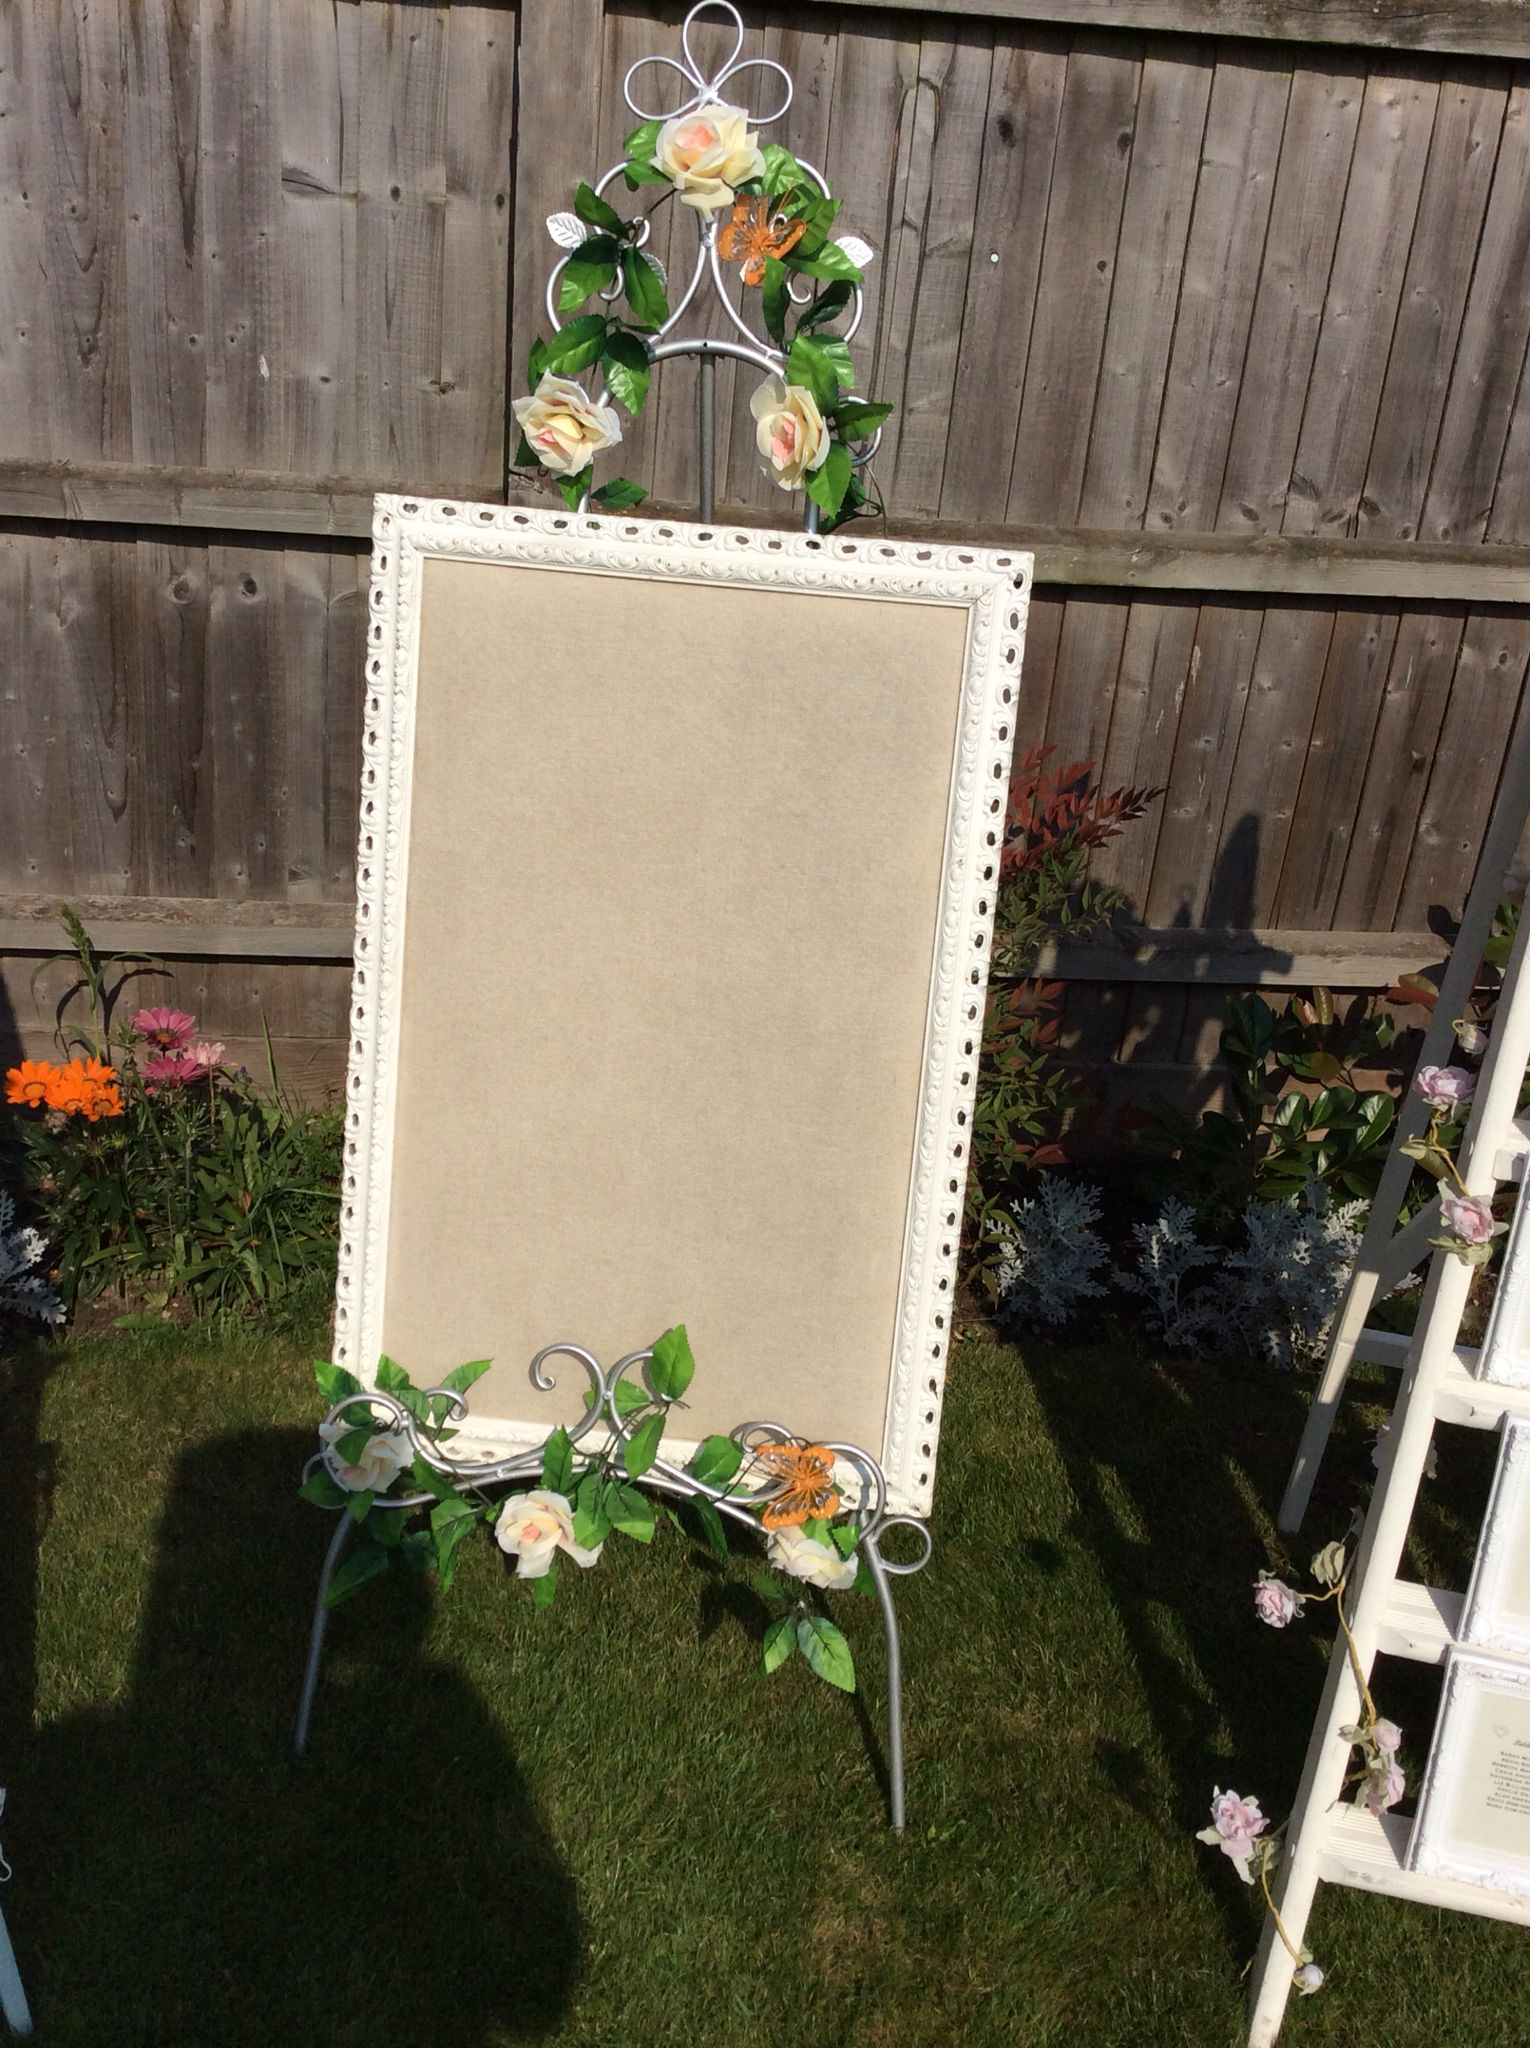 Floor standing easel hire £15 board £10 ideal to hold signtable plan menu etc cambridgeshire